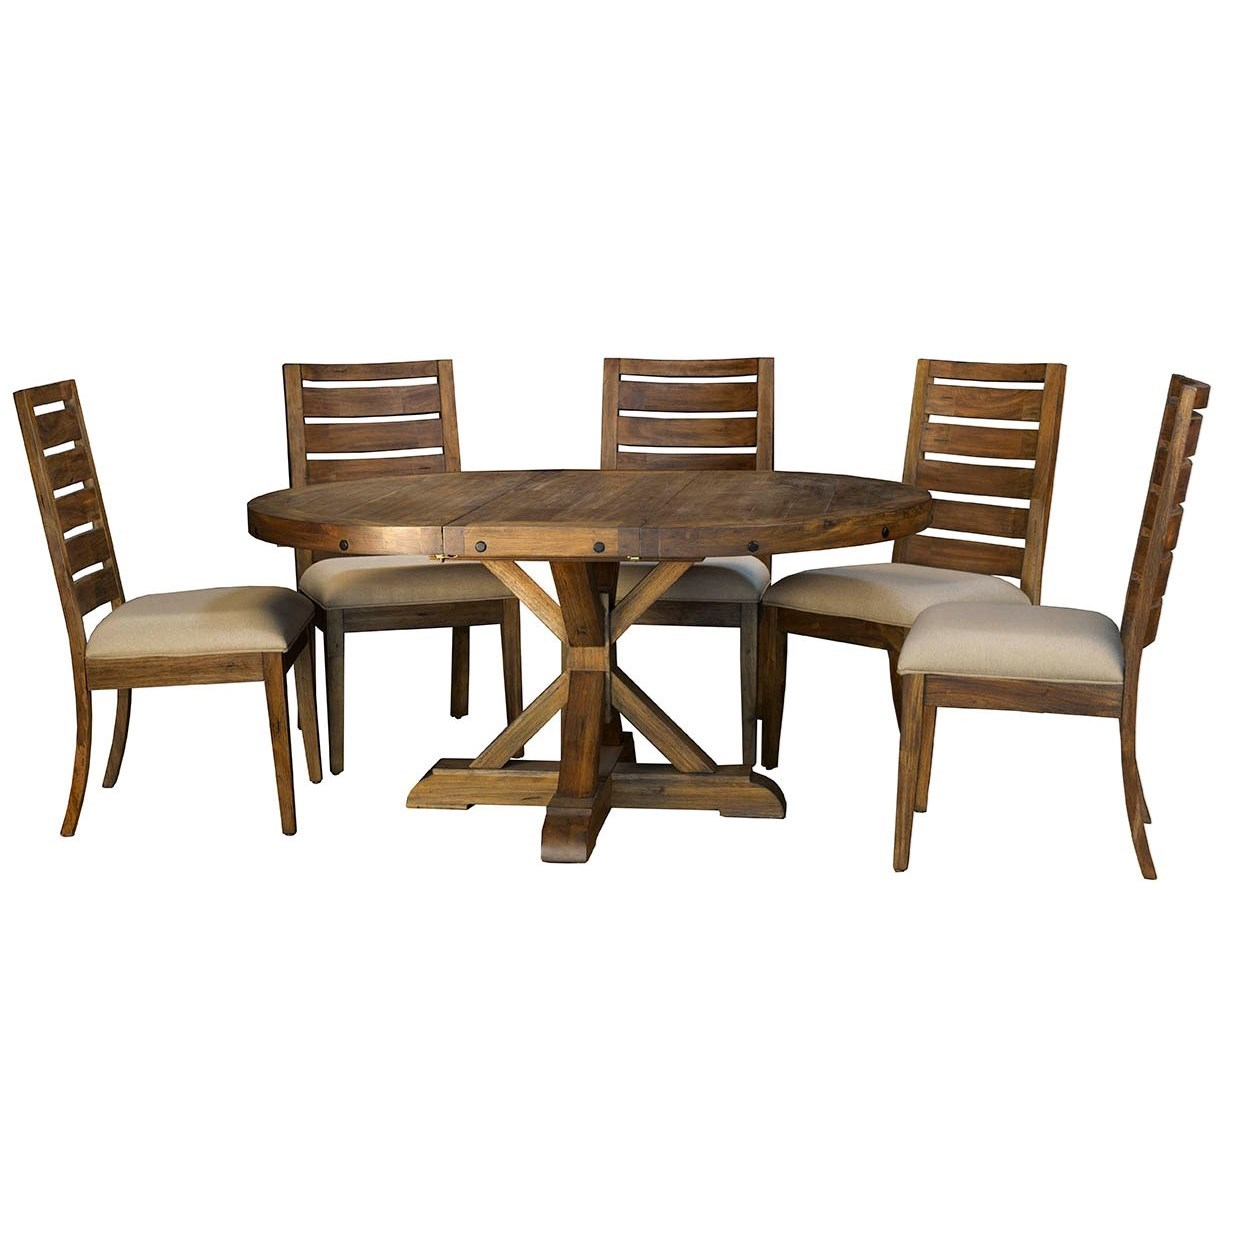 Aamerica Anacortes 6 Piece Dining Set Value City Furniture Dining 7 Or More Piece Sets